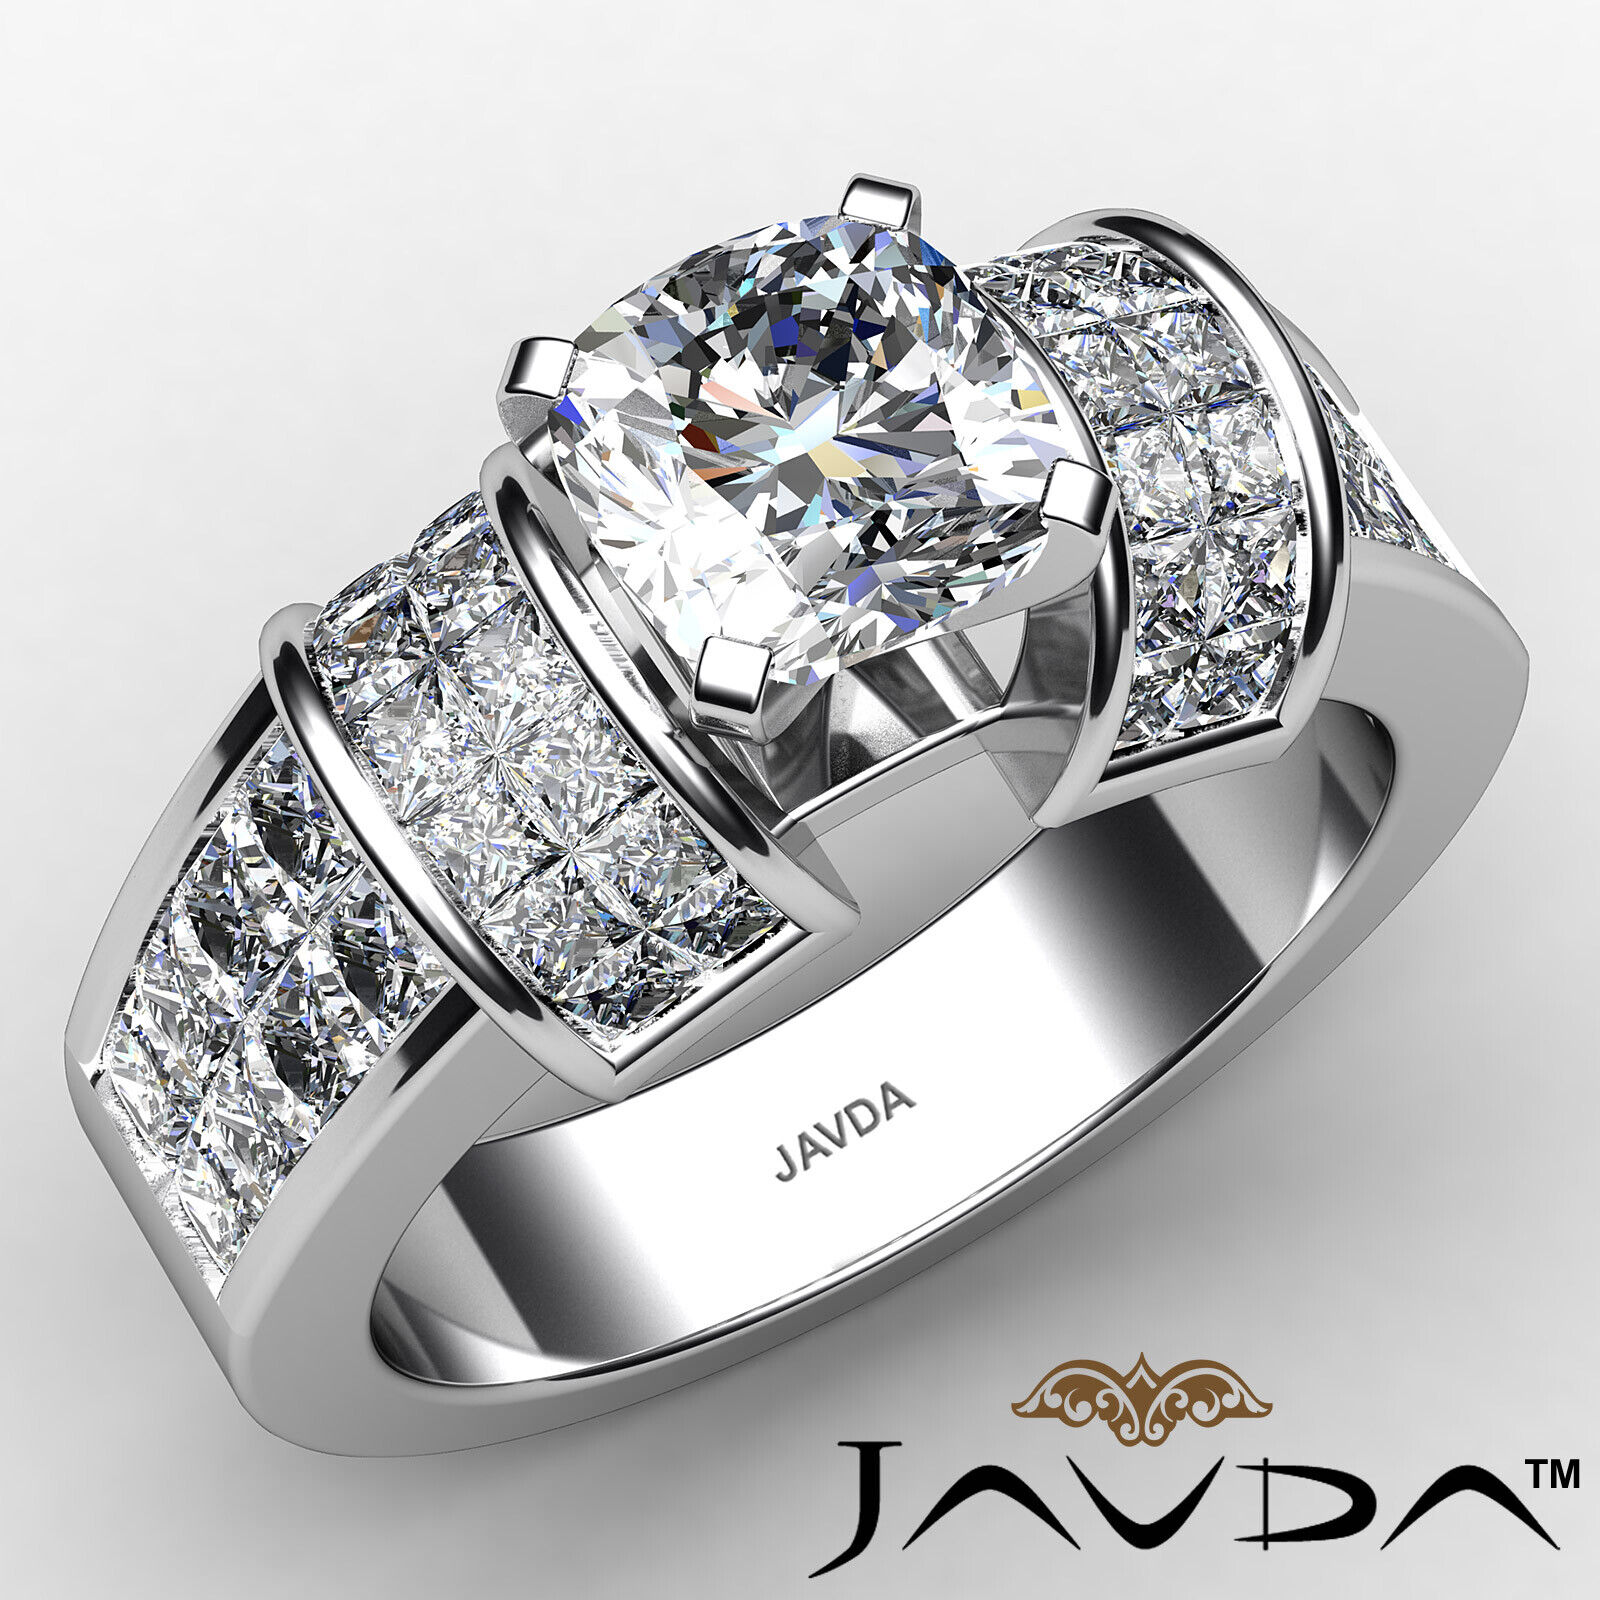 Cushion Diamond Engagement GIA Invisible Set Ring F Color & SI1 clarity 2.86 ctw